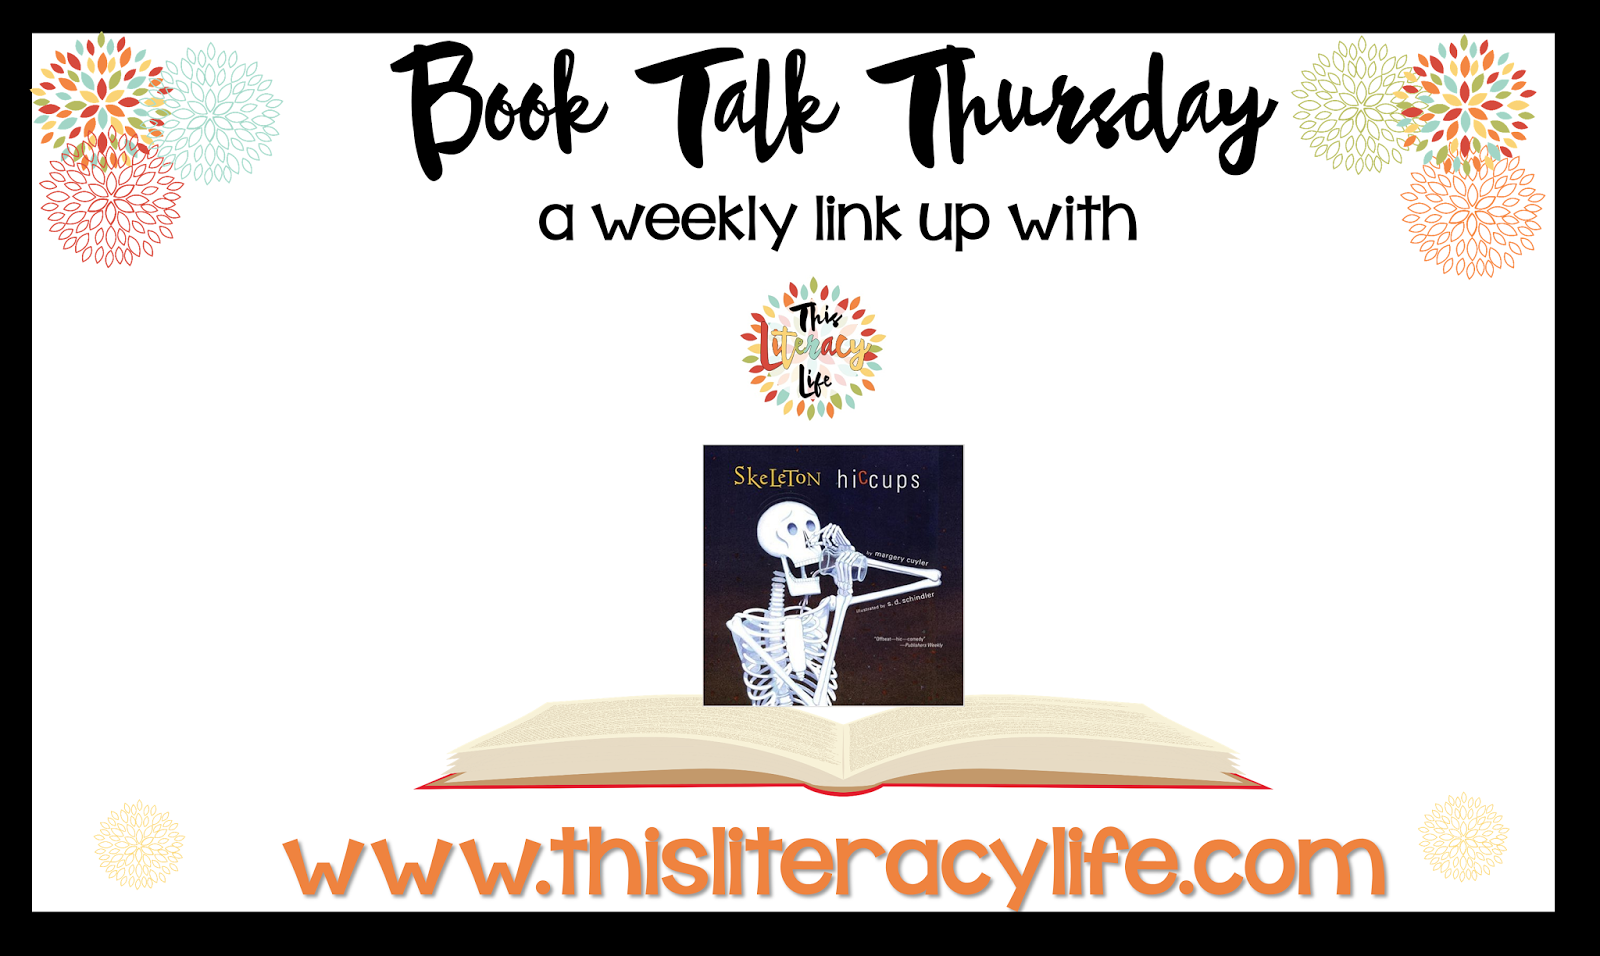 Skeleton can't get rid of his hiccups and keeps everyone laughing as he and ghost try their hardest. This simple book helps young students understand problem and solution in a simple way.